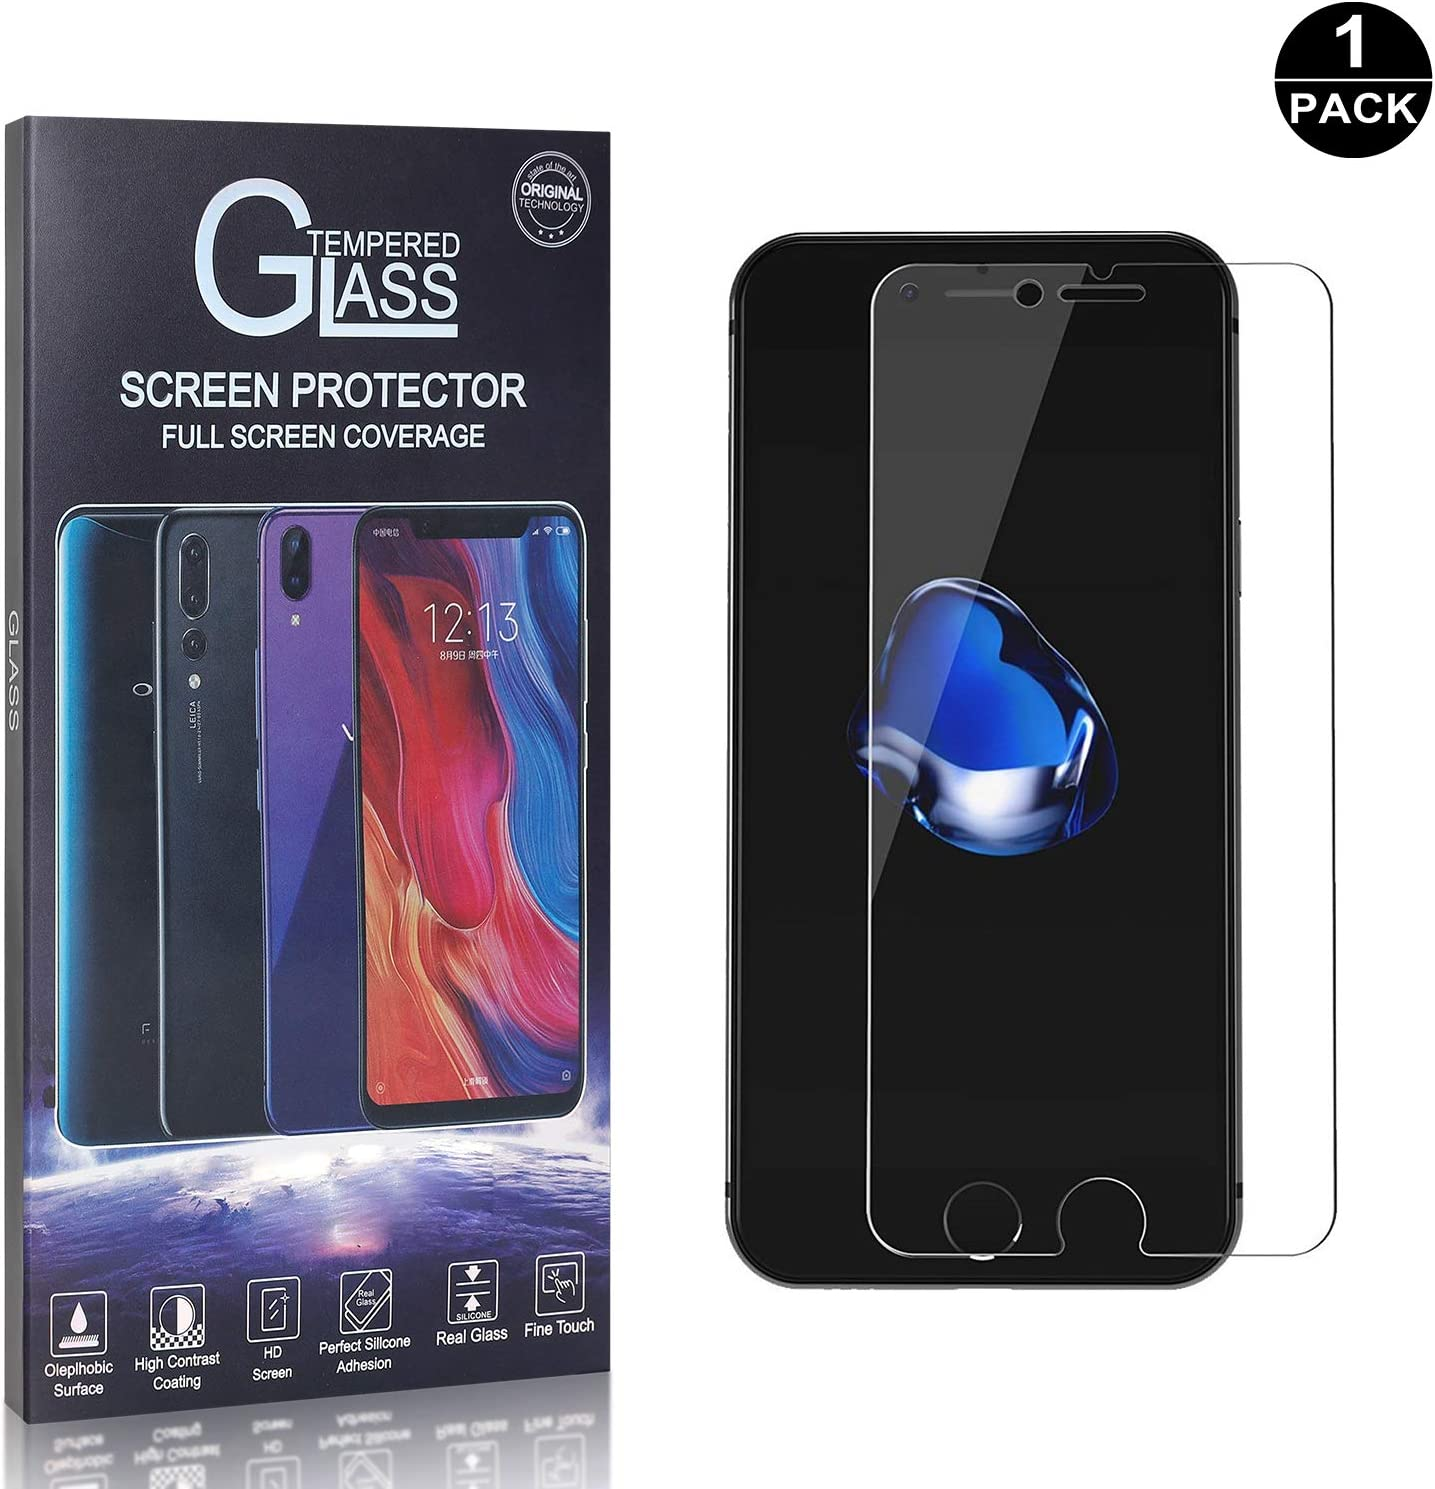 9H Hardness Anti-Fingerprint 1 Pack iPhone 7 // iPhone 8 Screen Protector Tempered Glass for Apple iPhone 7 // iPhone 8 Crystal Clear Anti-Scratch Ultra HD UNEXTATI